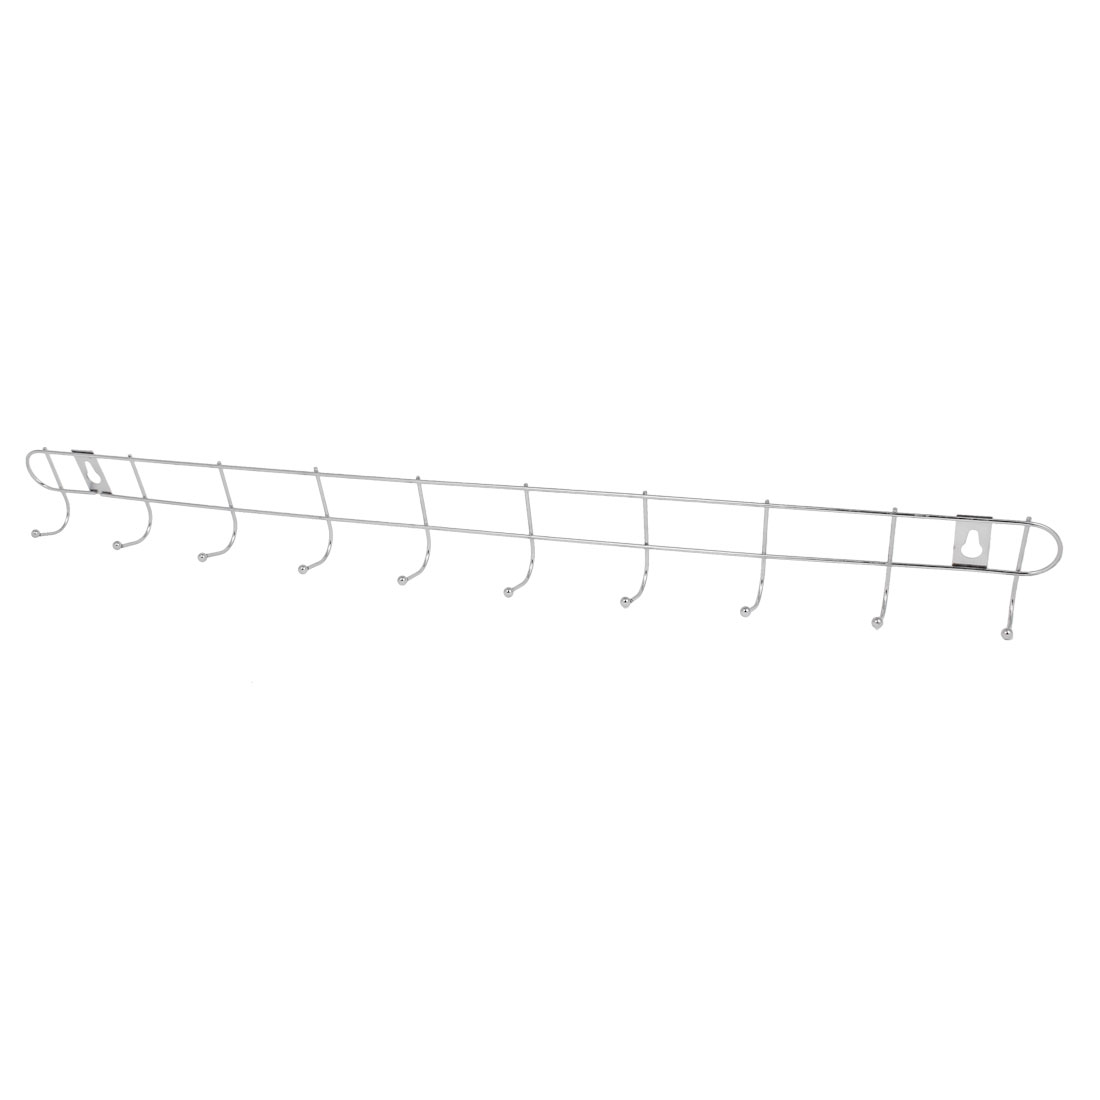 Home Silver Tone Ball End 10 Hooks Metal Rack Clothes Towel Wall Hanger